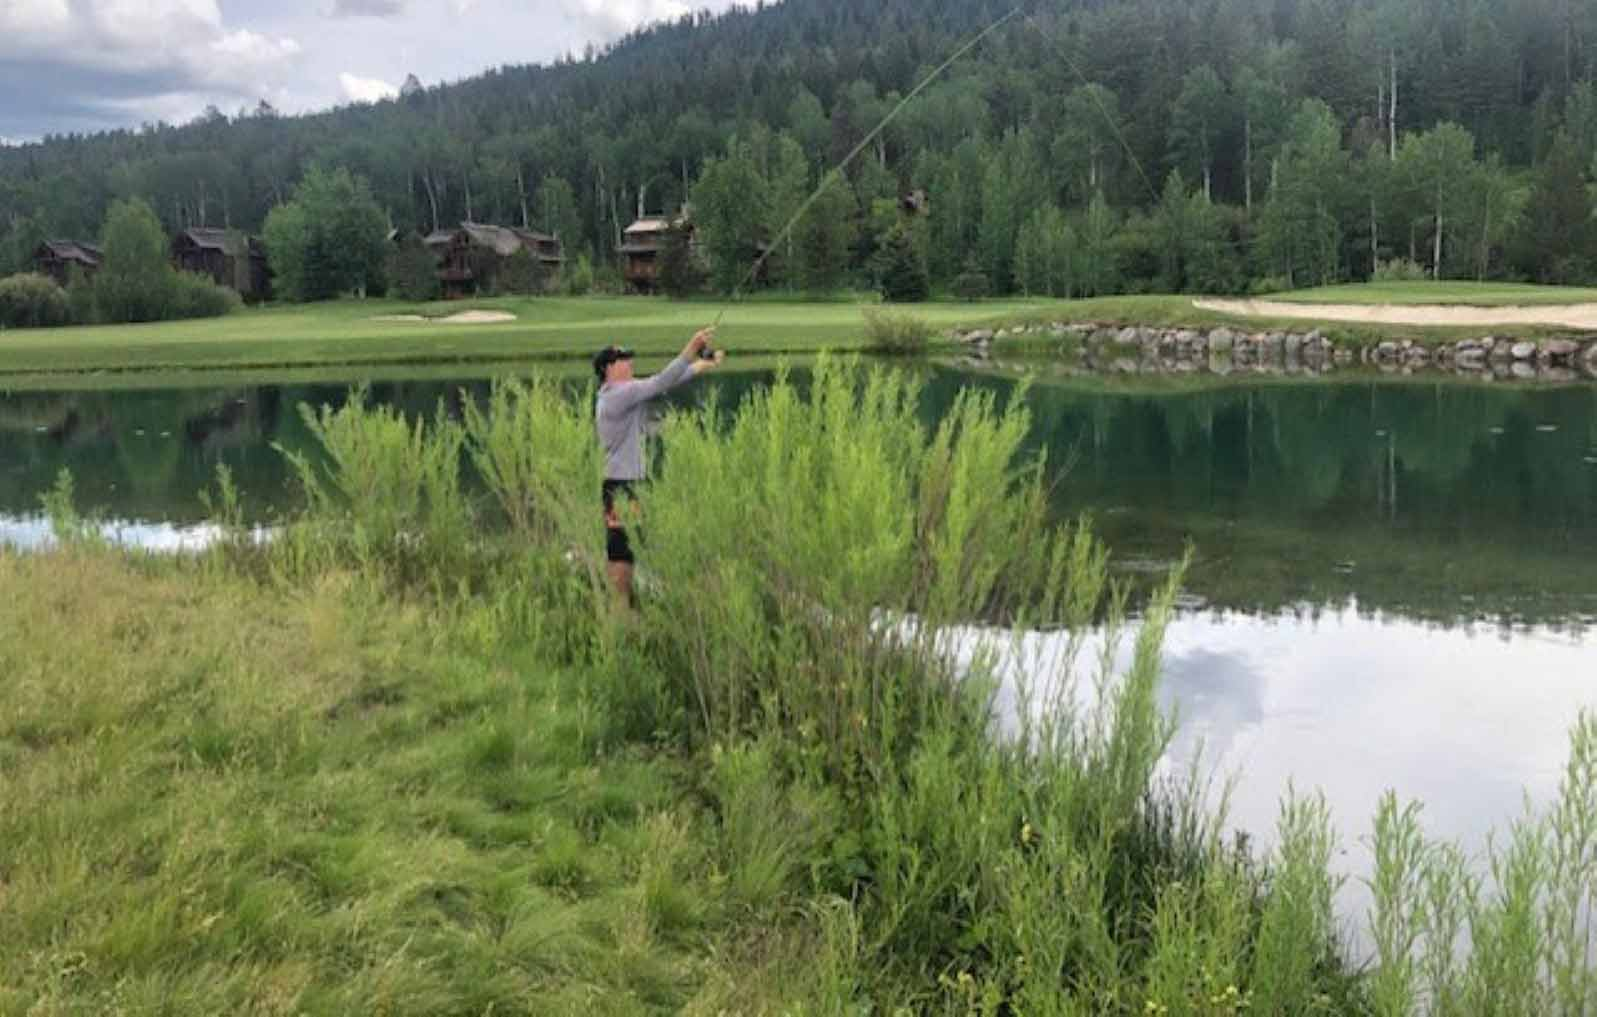 Fishing Ponds at Teton Springs